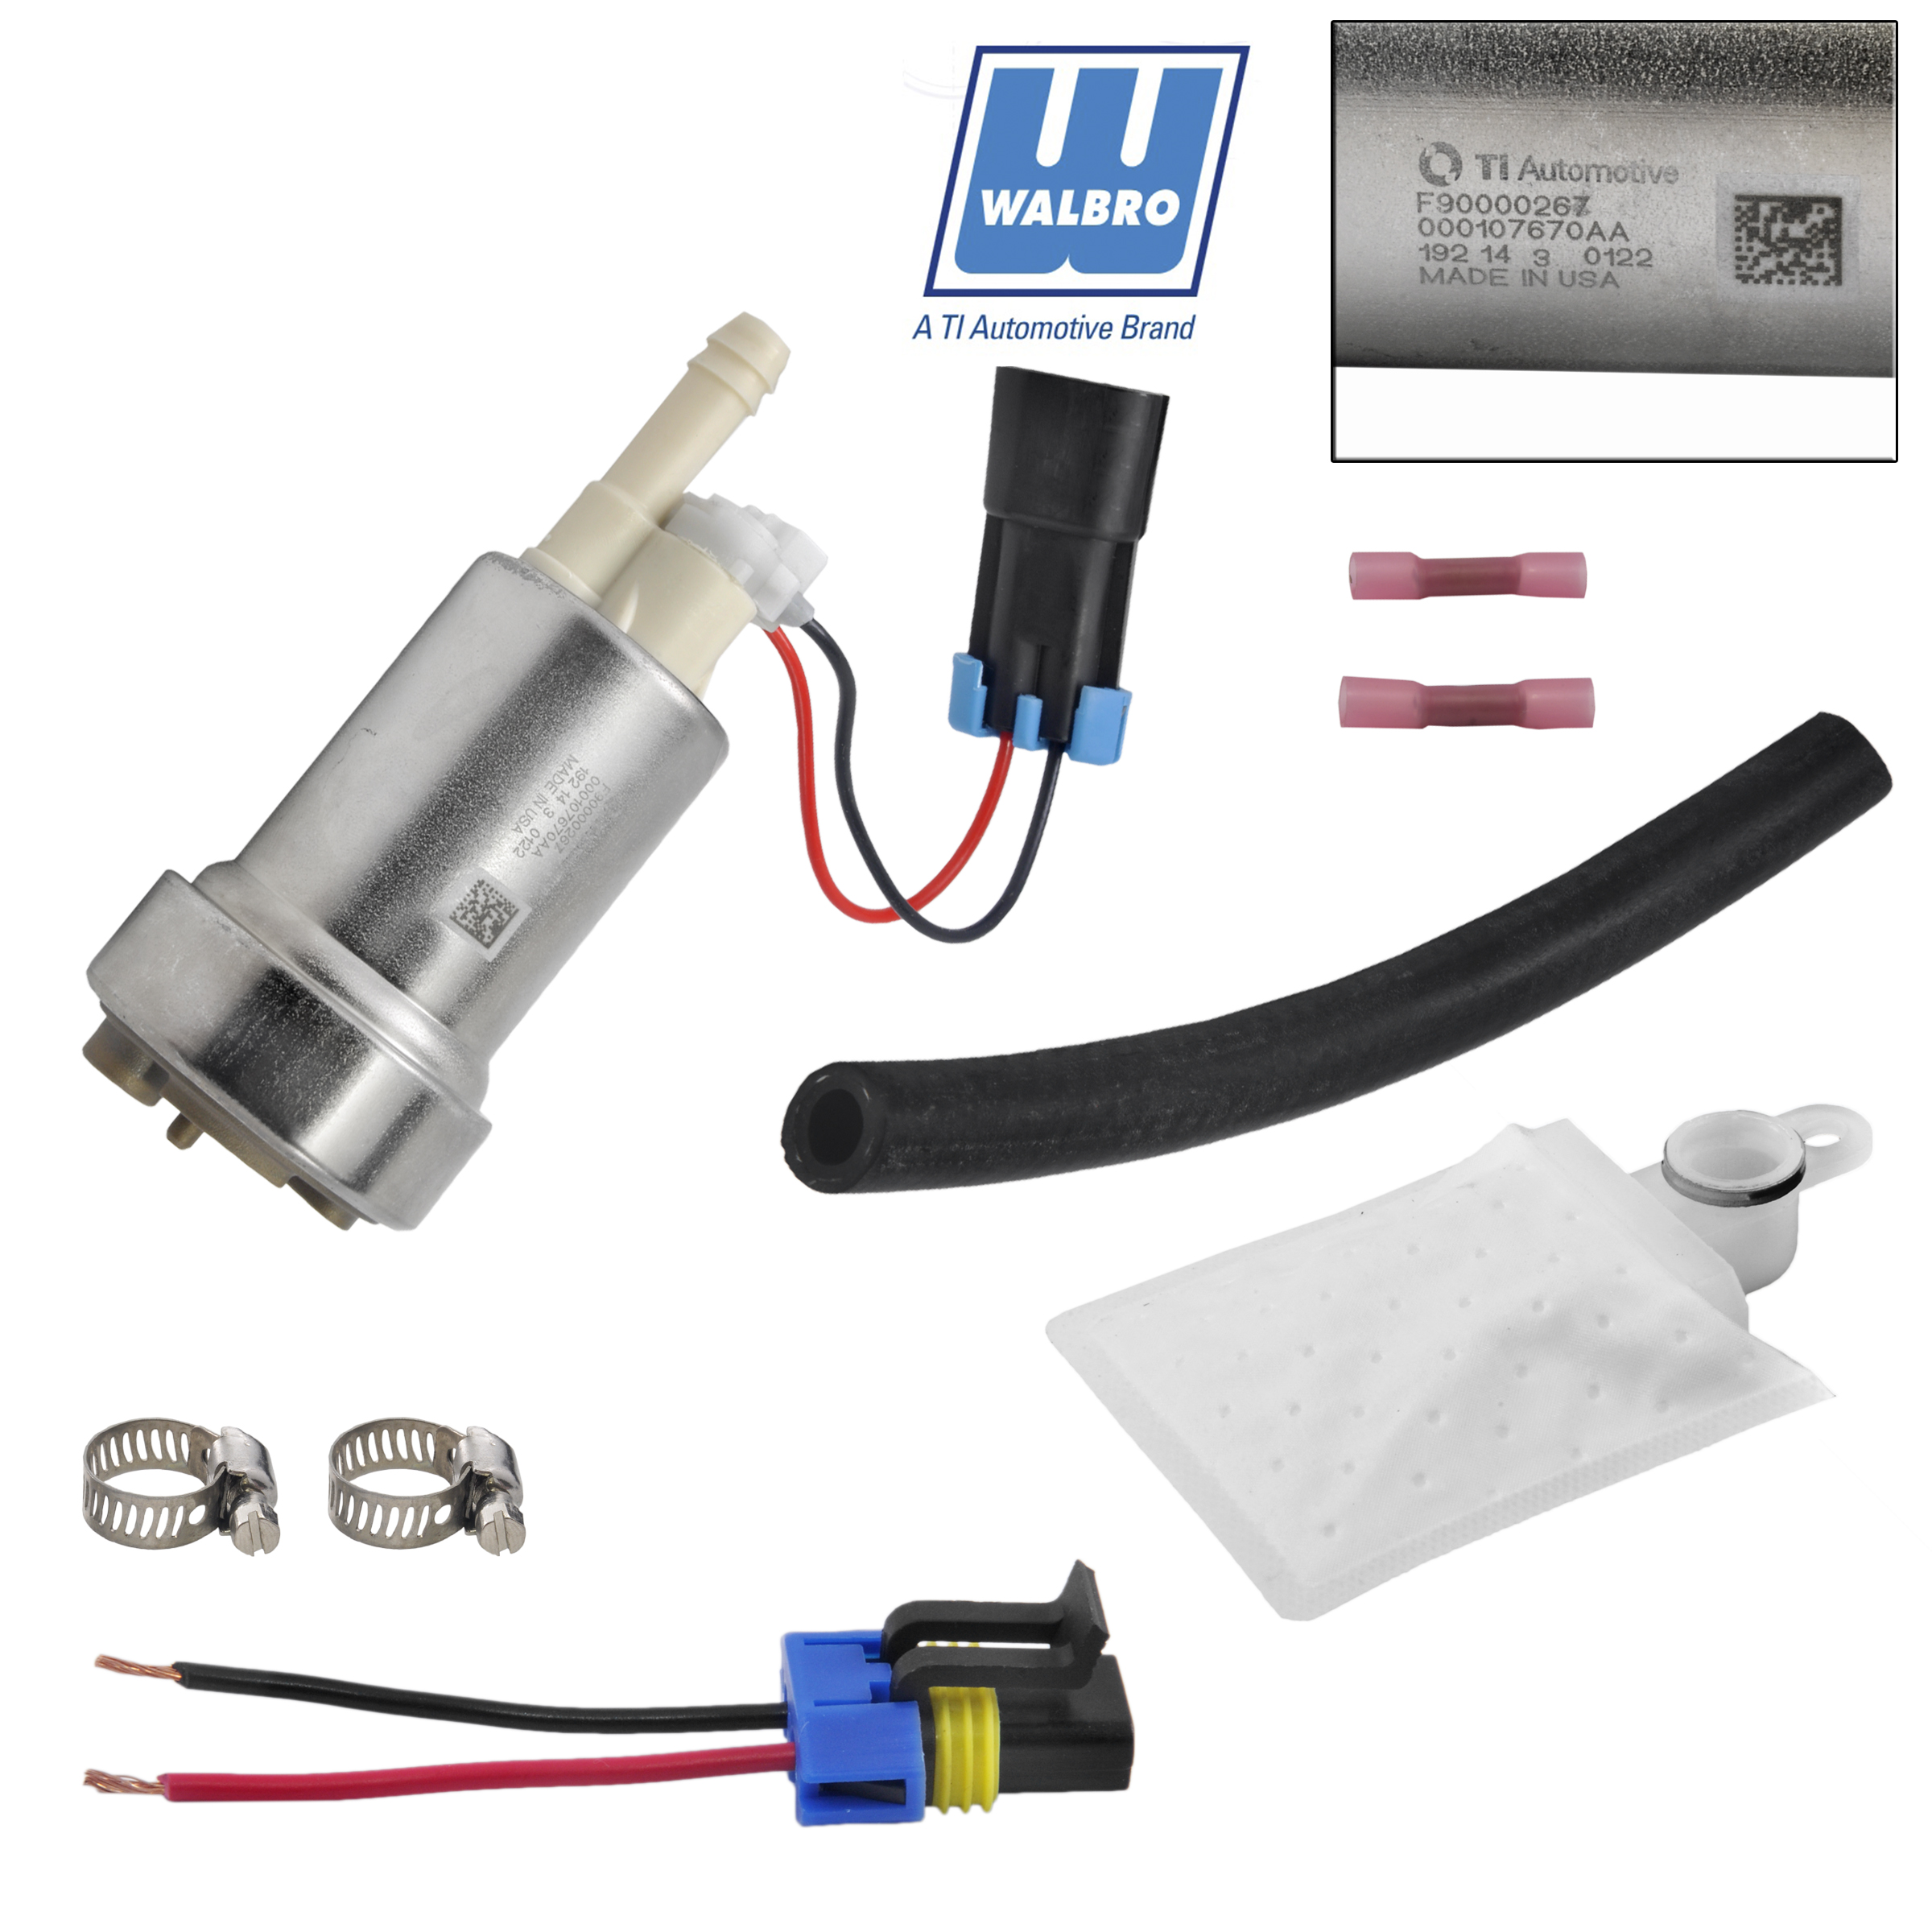 new walbro racing high flow f90000267 e85 flex fuel pump kit 450lph for 750 hp ebay. Black Bedroom Furniture Sets. Home Design Ideas